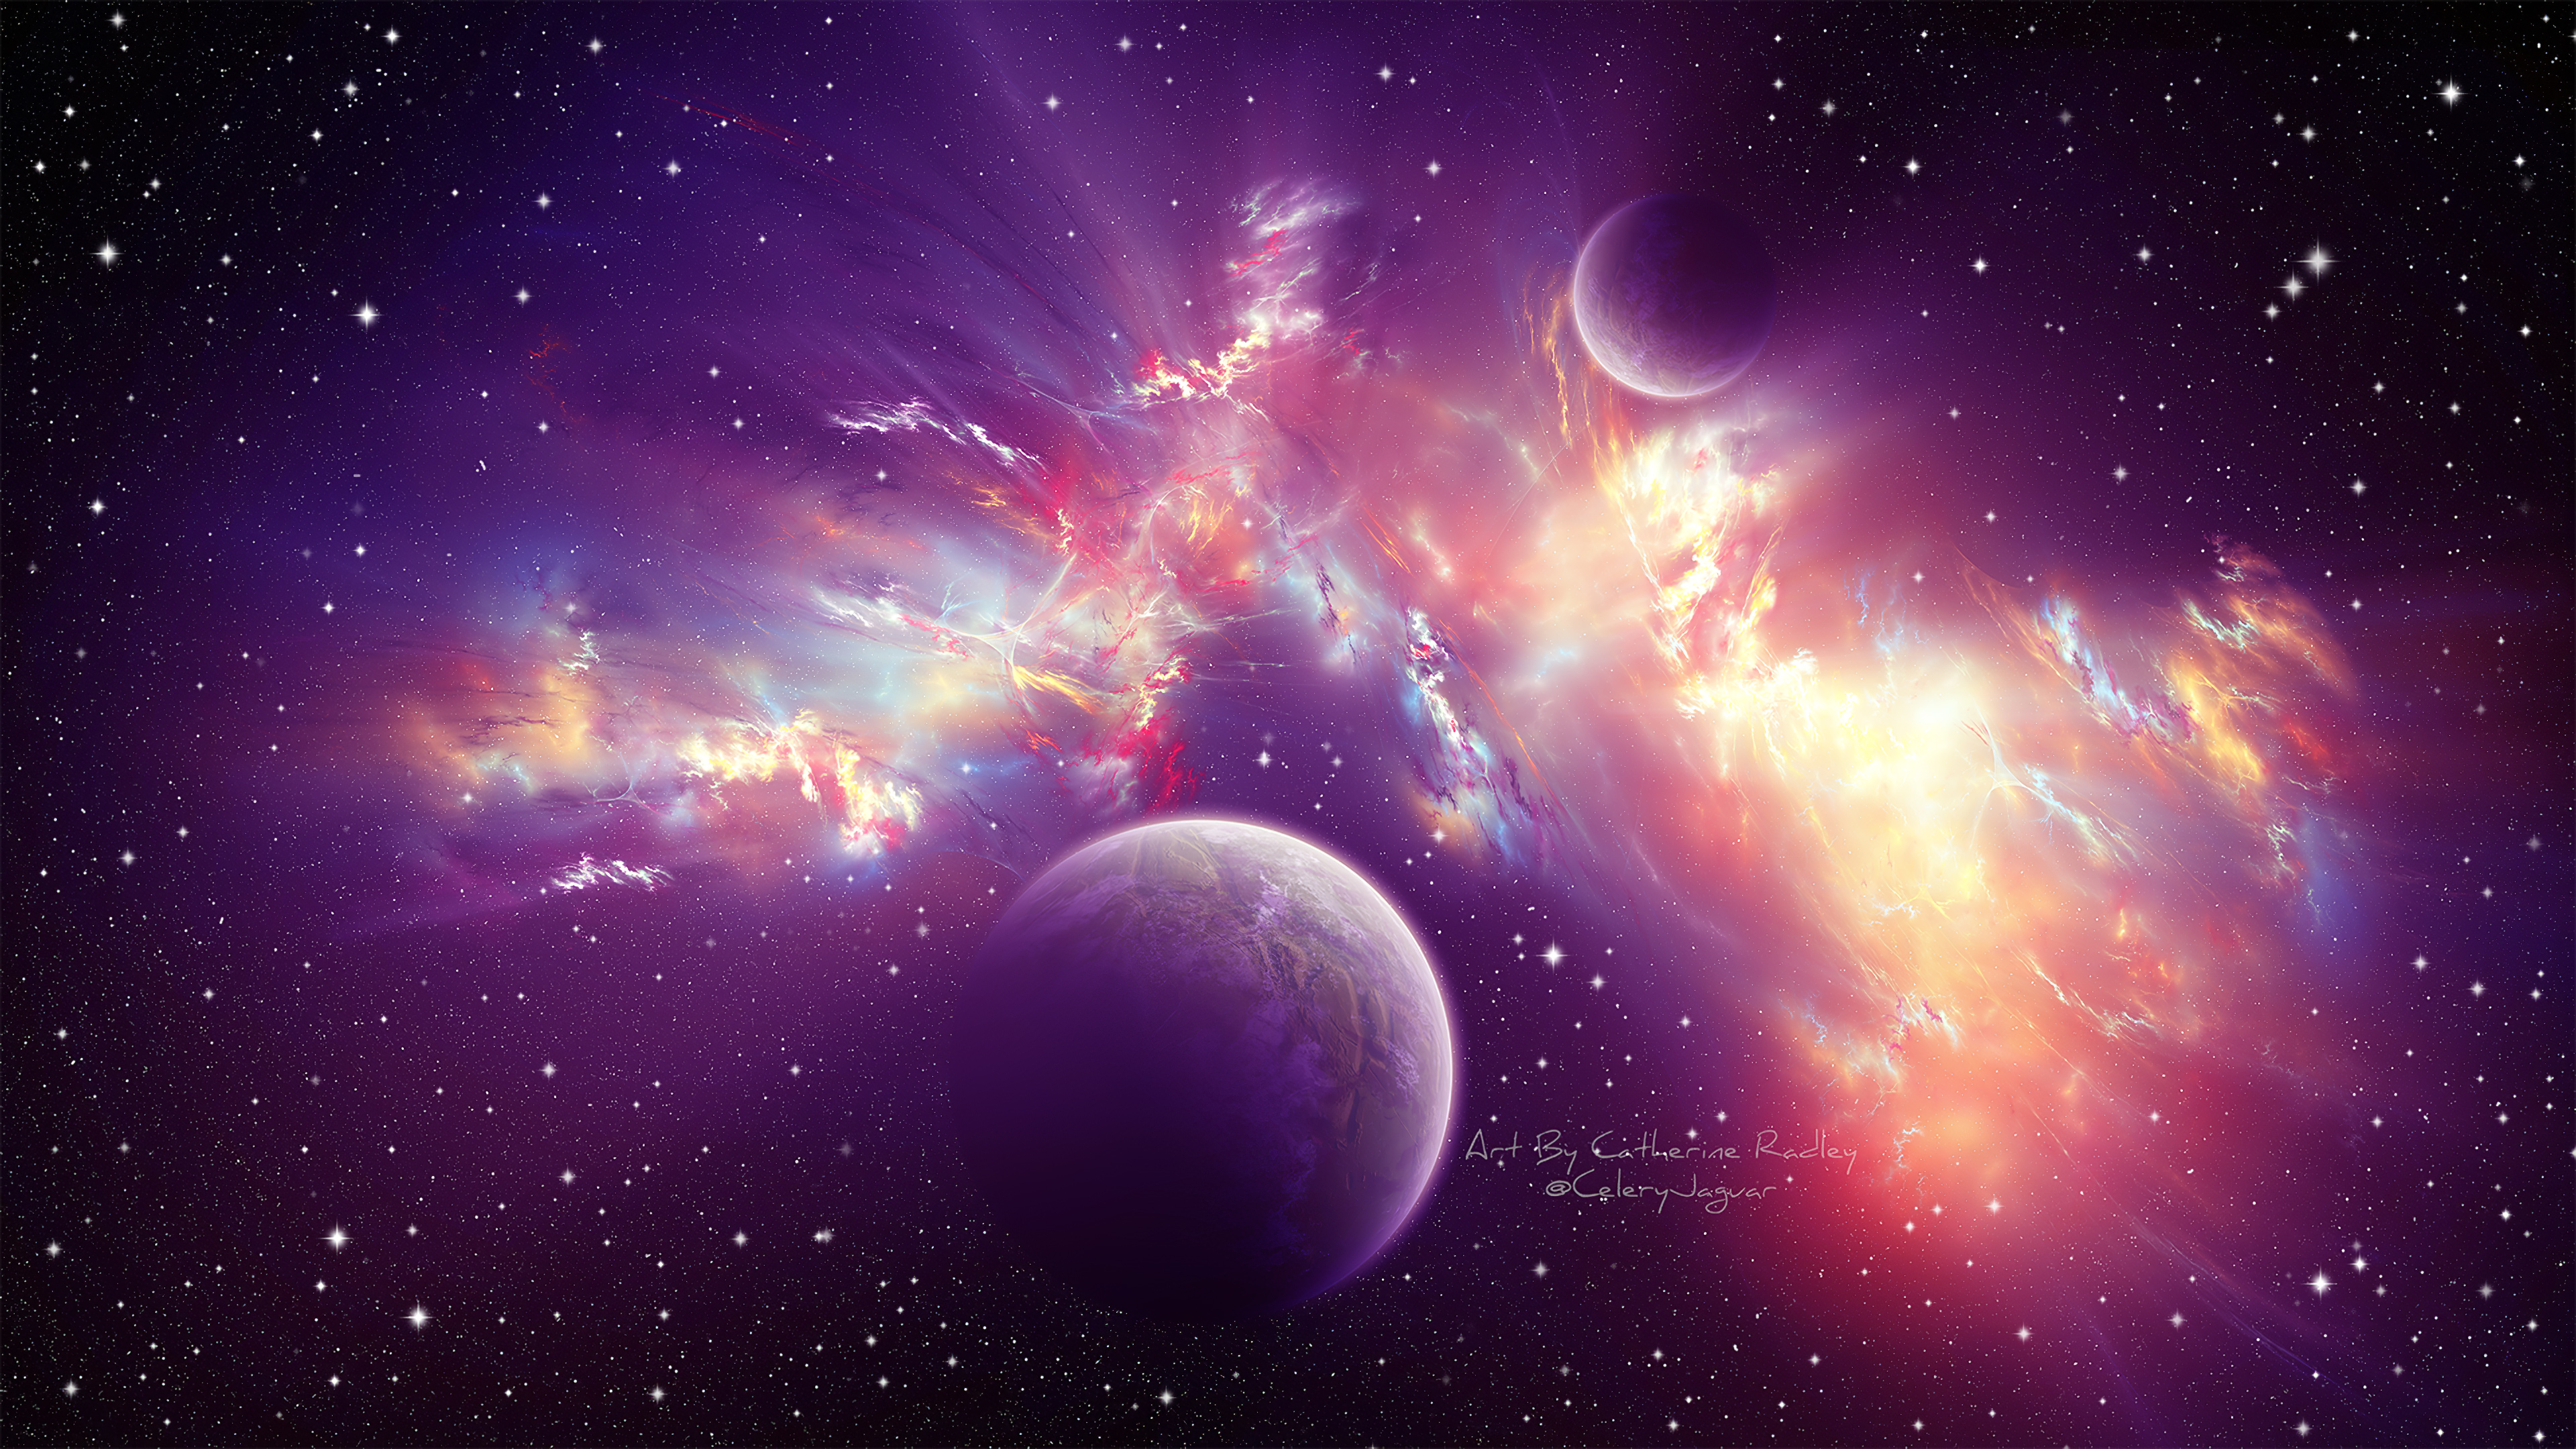 Outerspace 4k, HD Digital Universe, 4k Wallpapers, Images ...